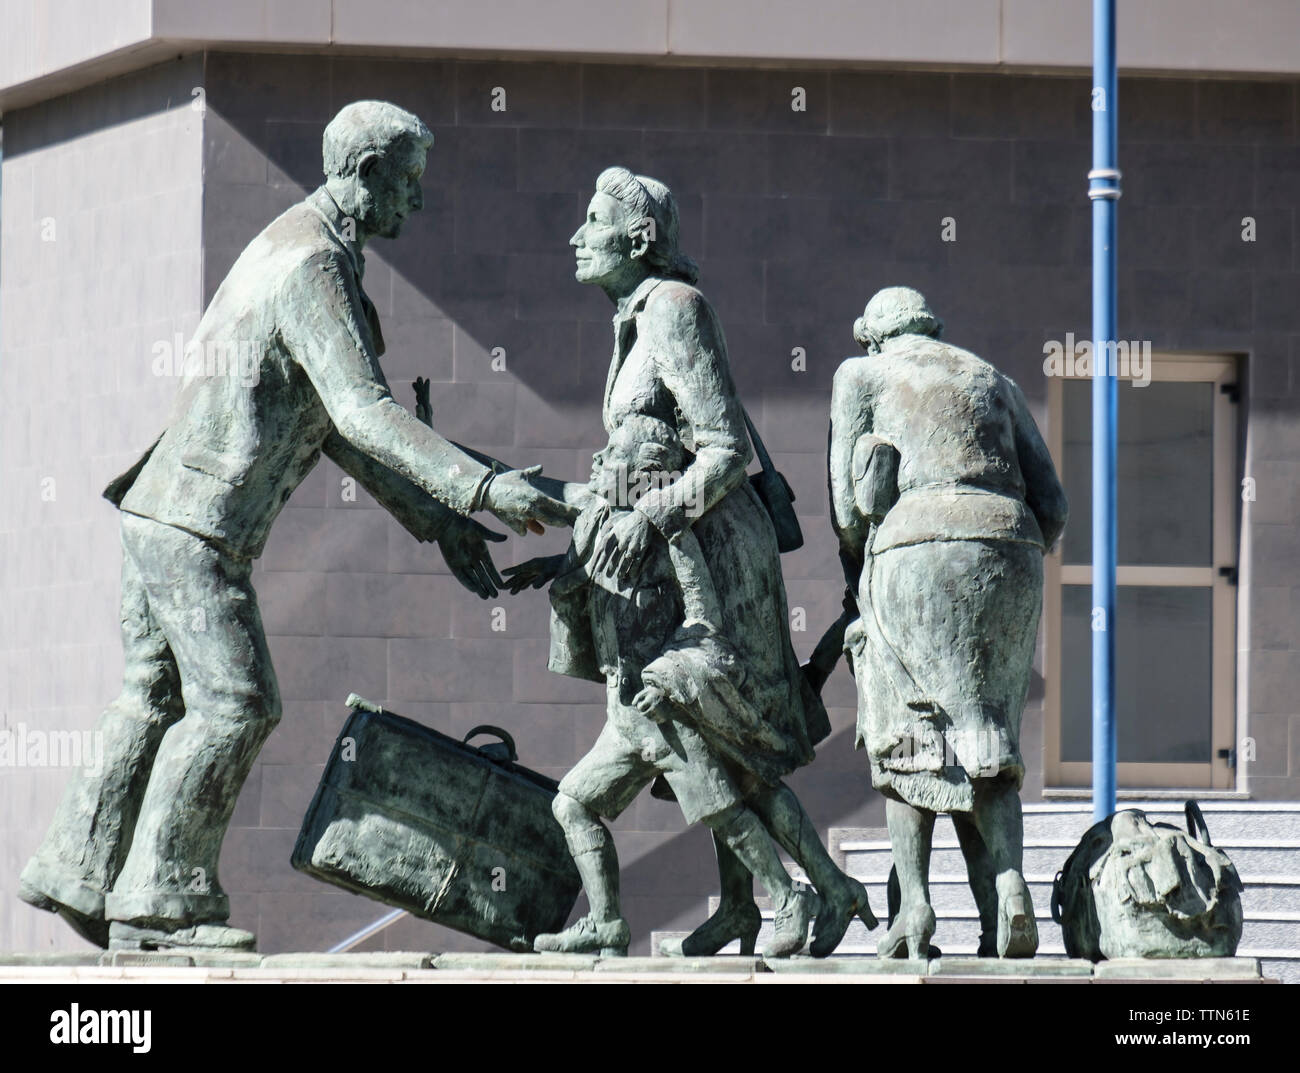 Evacuation of Gibraltarians monument - Stock Image